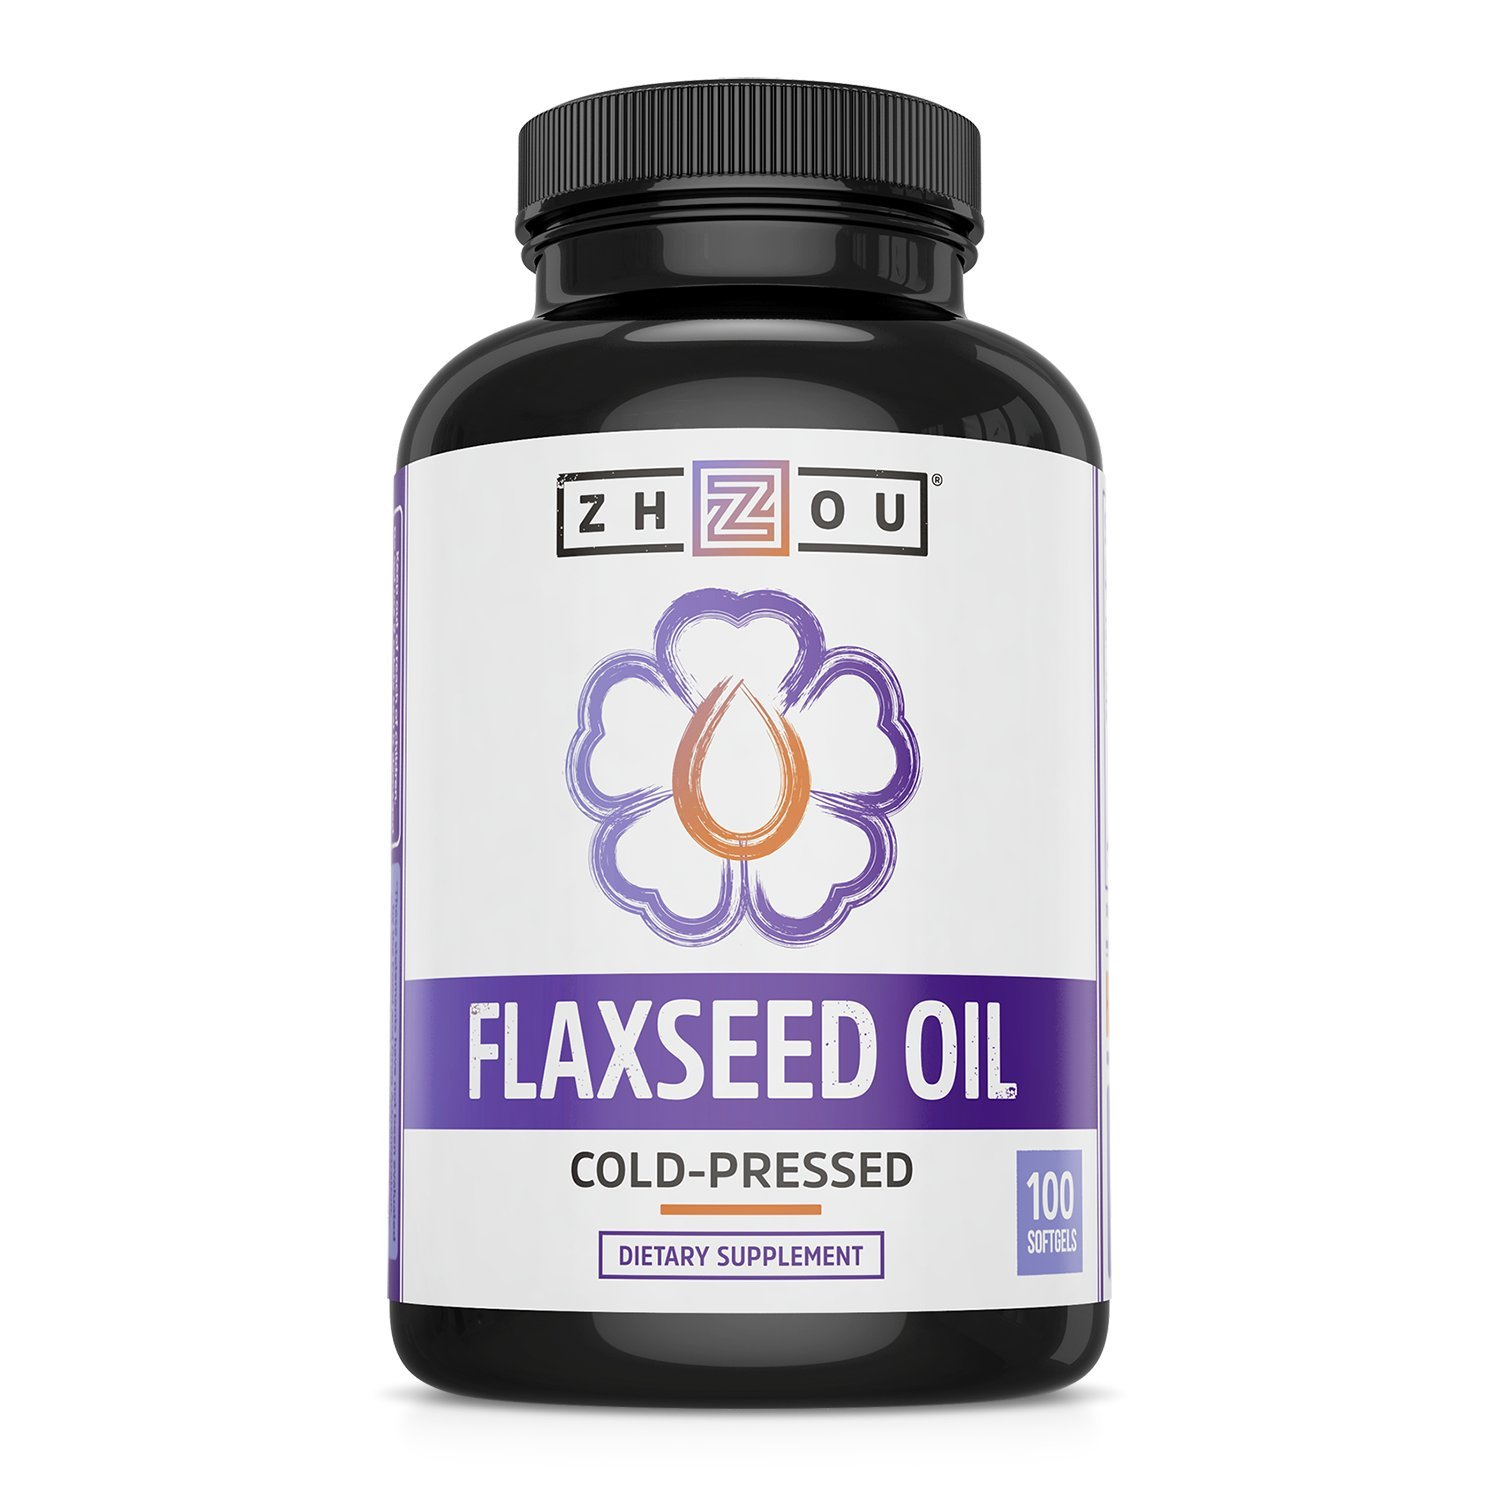 Flaxseed Oil Softgels to Support Heart Health and Healthy Hair, Skin & Nails - Cold-Pressed - Essential Omega 3 6 9 Fatty Acids - 1000 mg per Serving, 100 Count by Zhou Nutrition